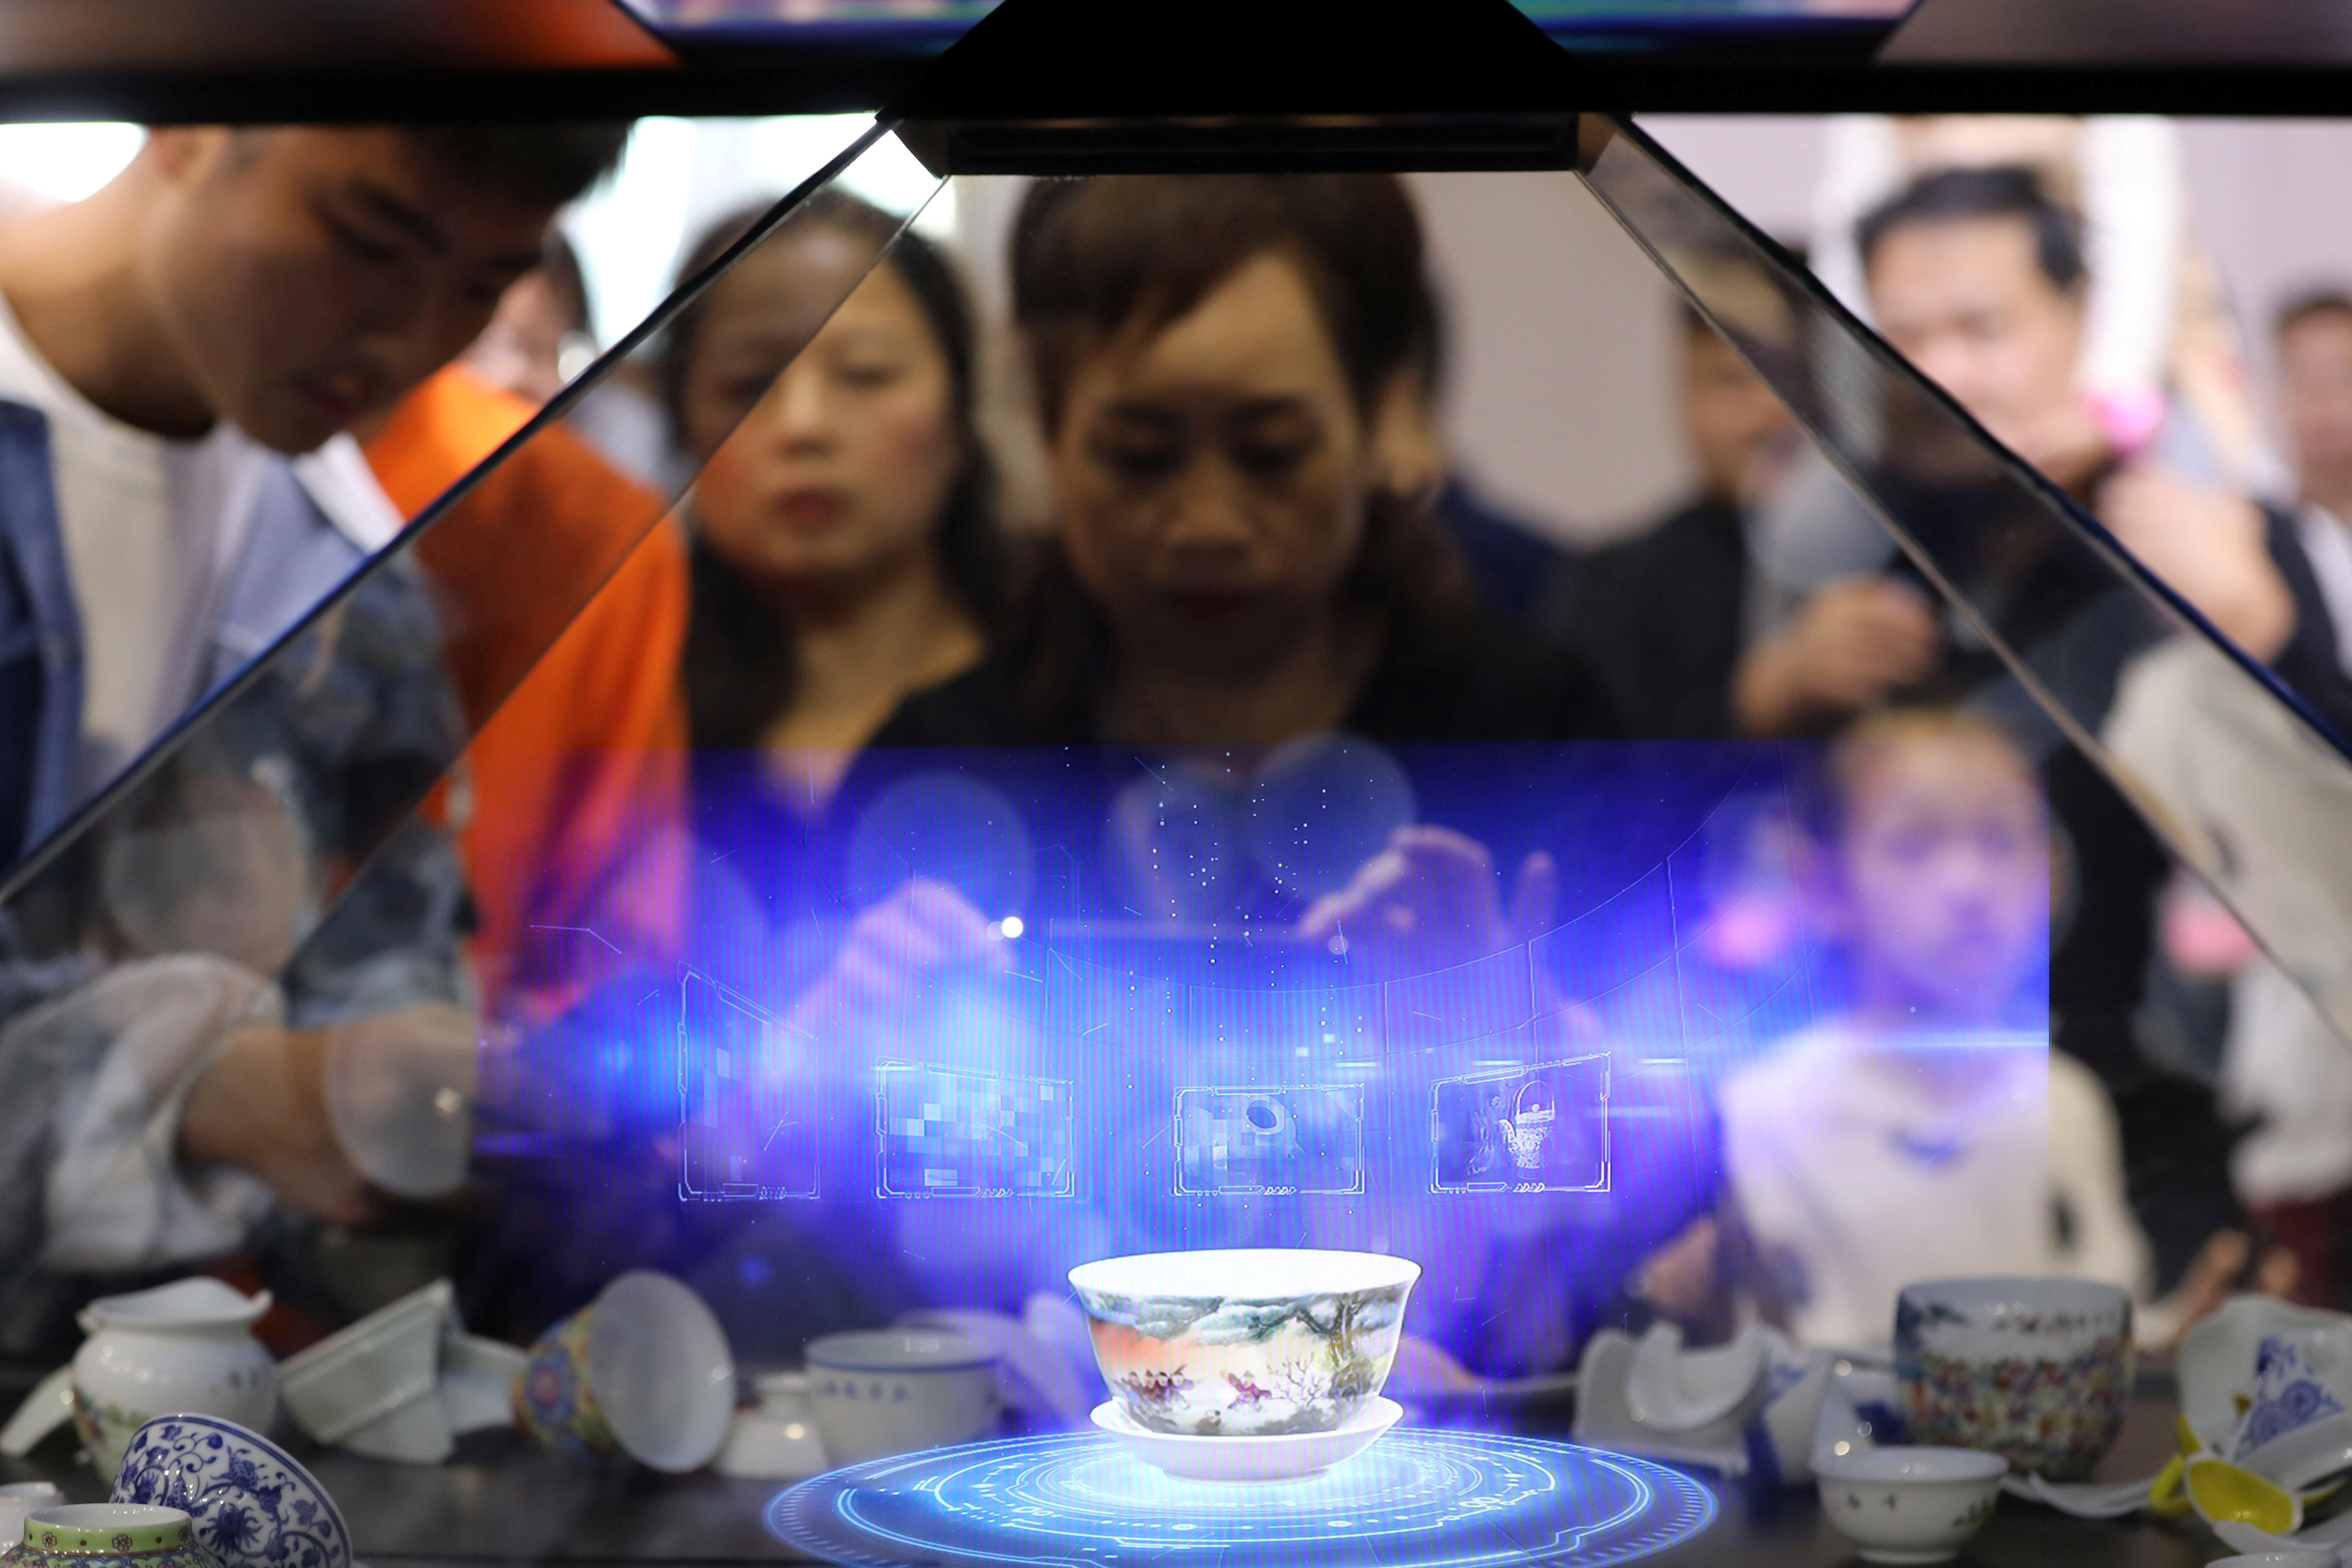 Visitors hold their phones in front of a hologram showing a porcelain teacup that is projected inside a glass cabinet during the World Conference on VR Industry in Nanchang, Jiangxi province, China October 20, 2019. Picture taken October 20, 2019. REUTERS/Stringer